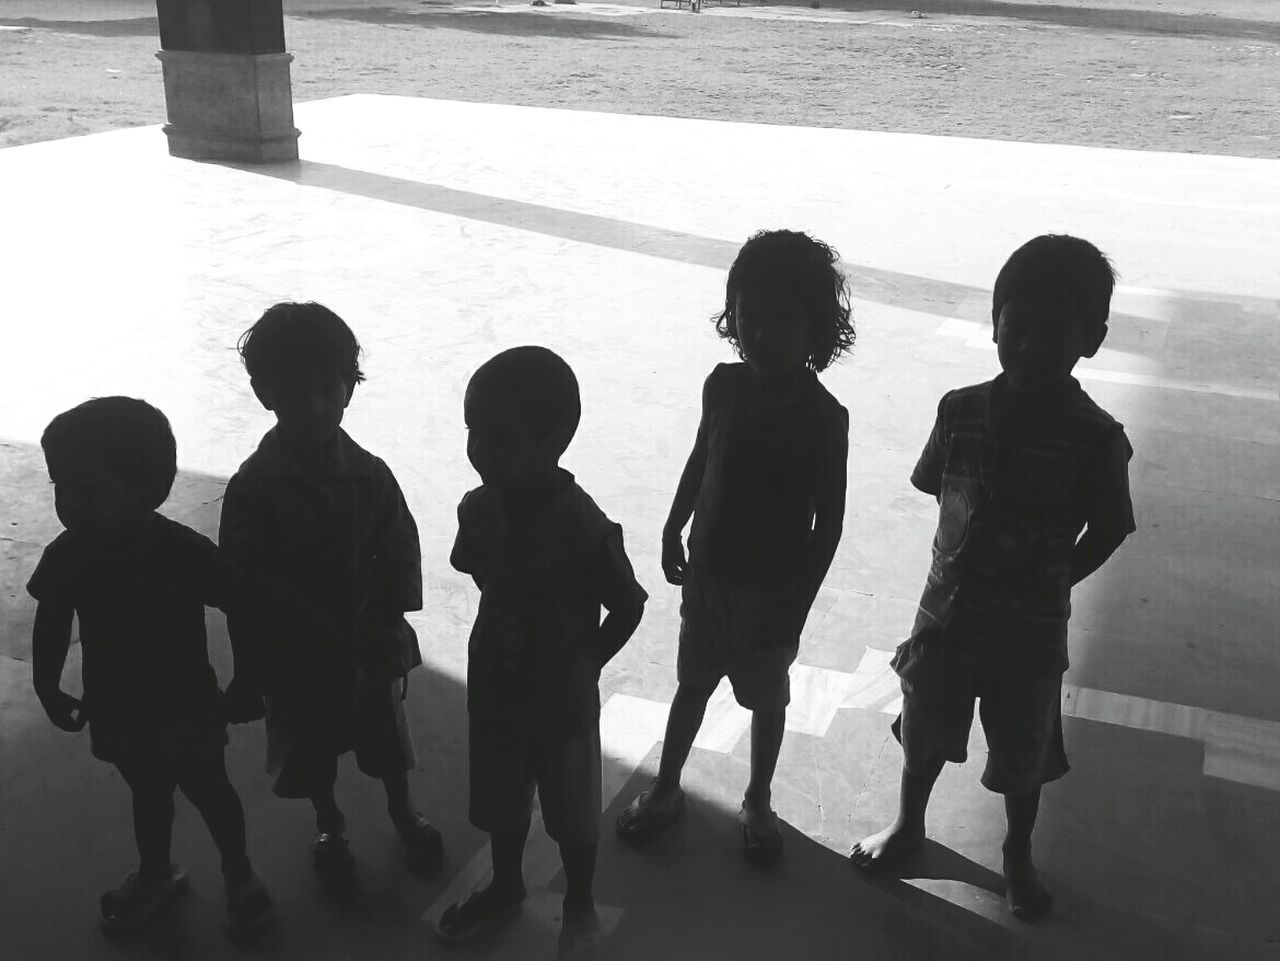 Enjoy The New Normal No Posing Blackandwhitephoto Outdoors Kids In Black Luminosity The Photograph A Question Without An Answer Of The Sapling